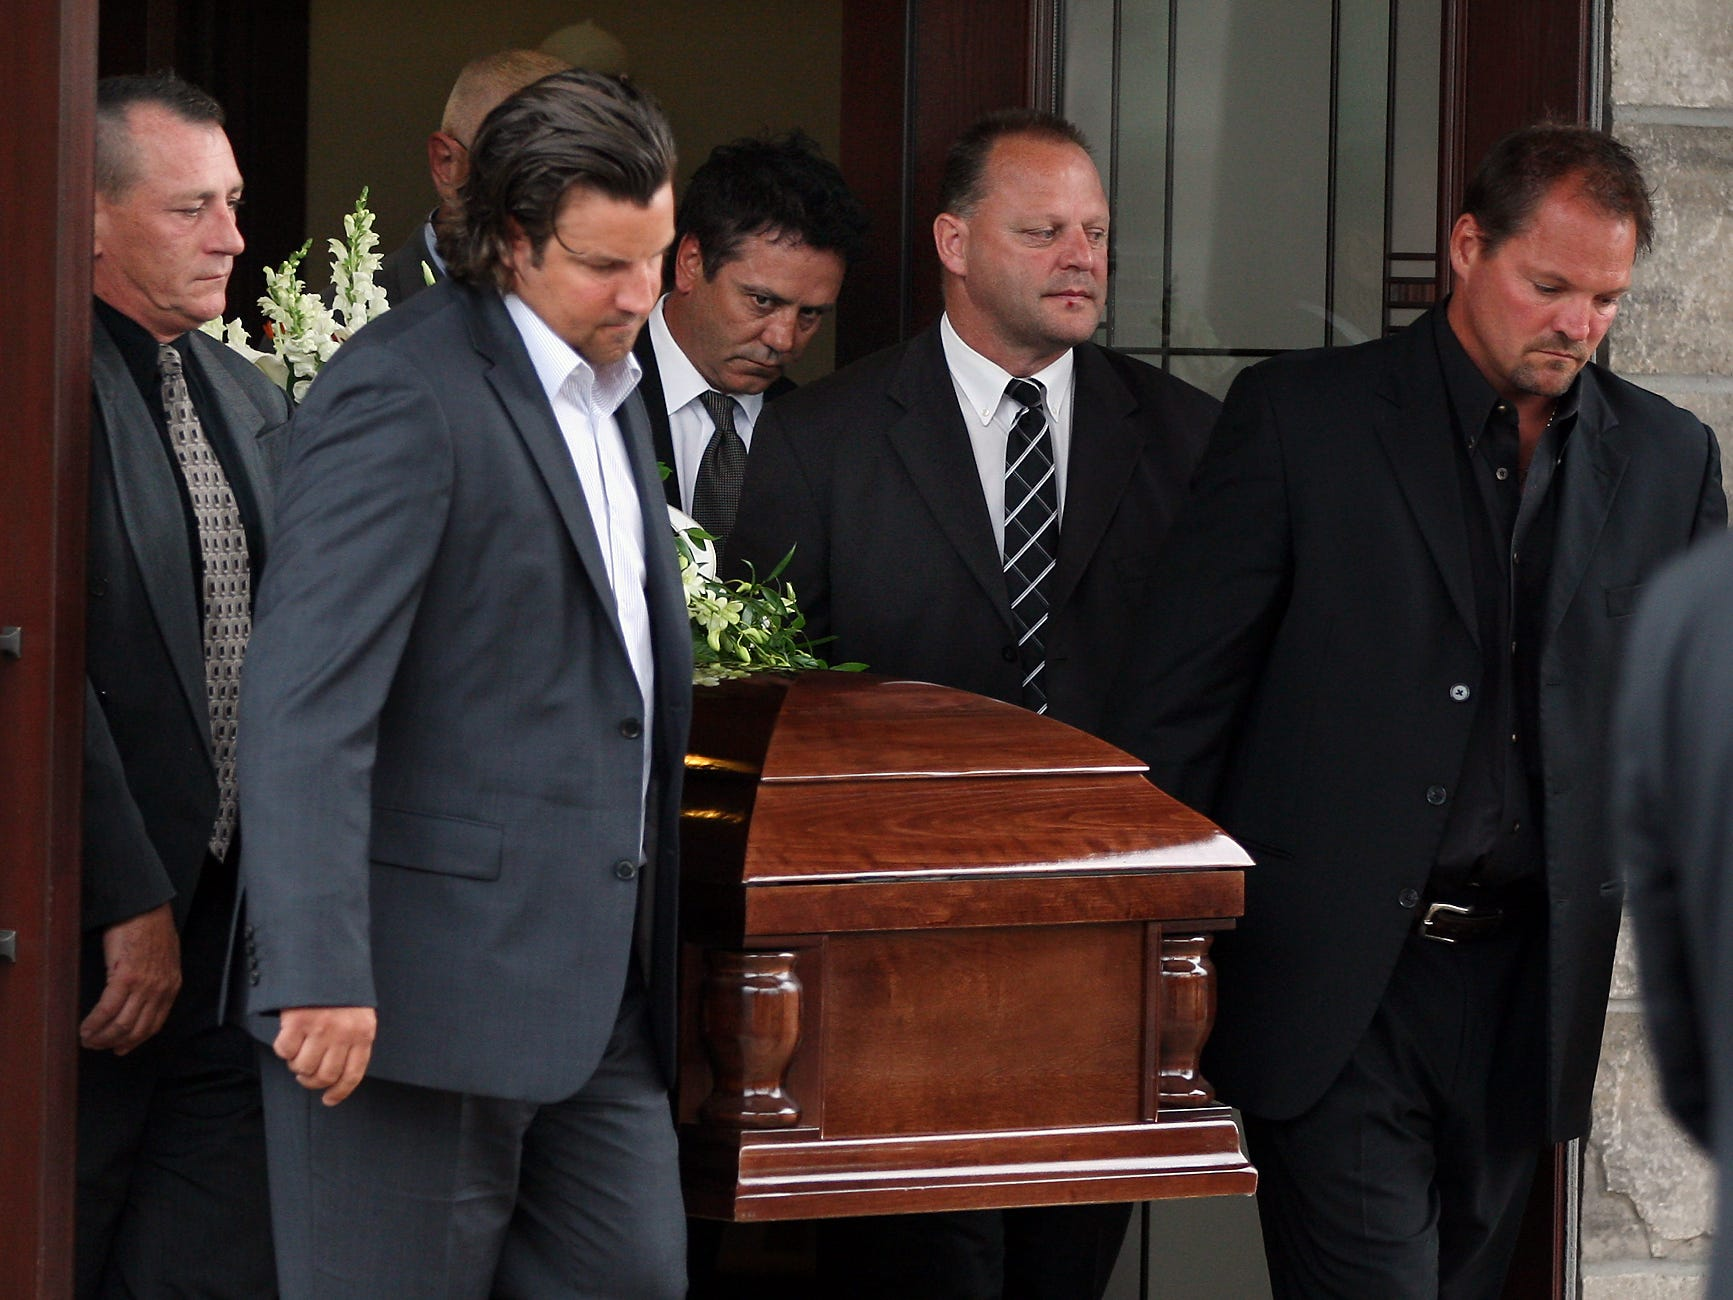 Pallbearers Joey Kocur, right, Gerry Gallant and Doug Gilmore, behind right, and others, carry the casket of Bob Probert from Families First Funeral Home to Windsor Christian Fellowship for a funeral service for one of the toughest players in NHL history.